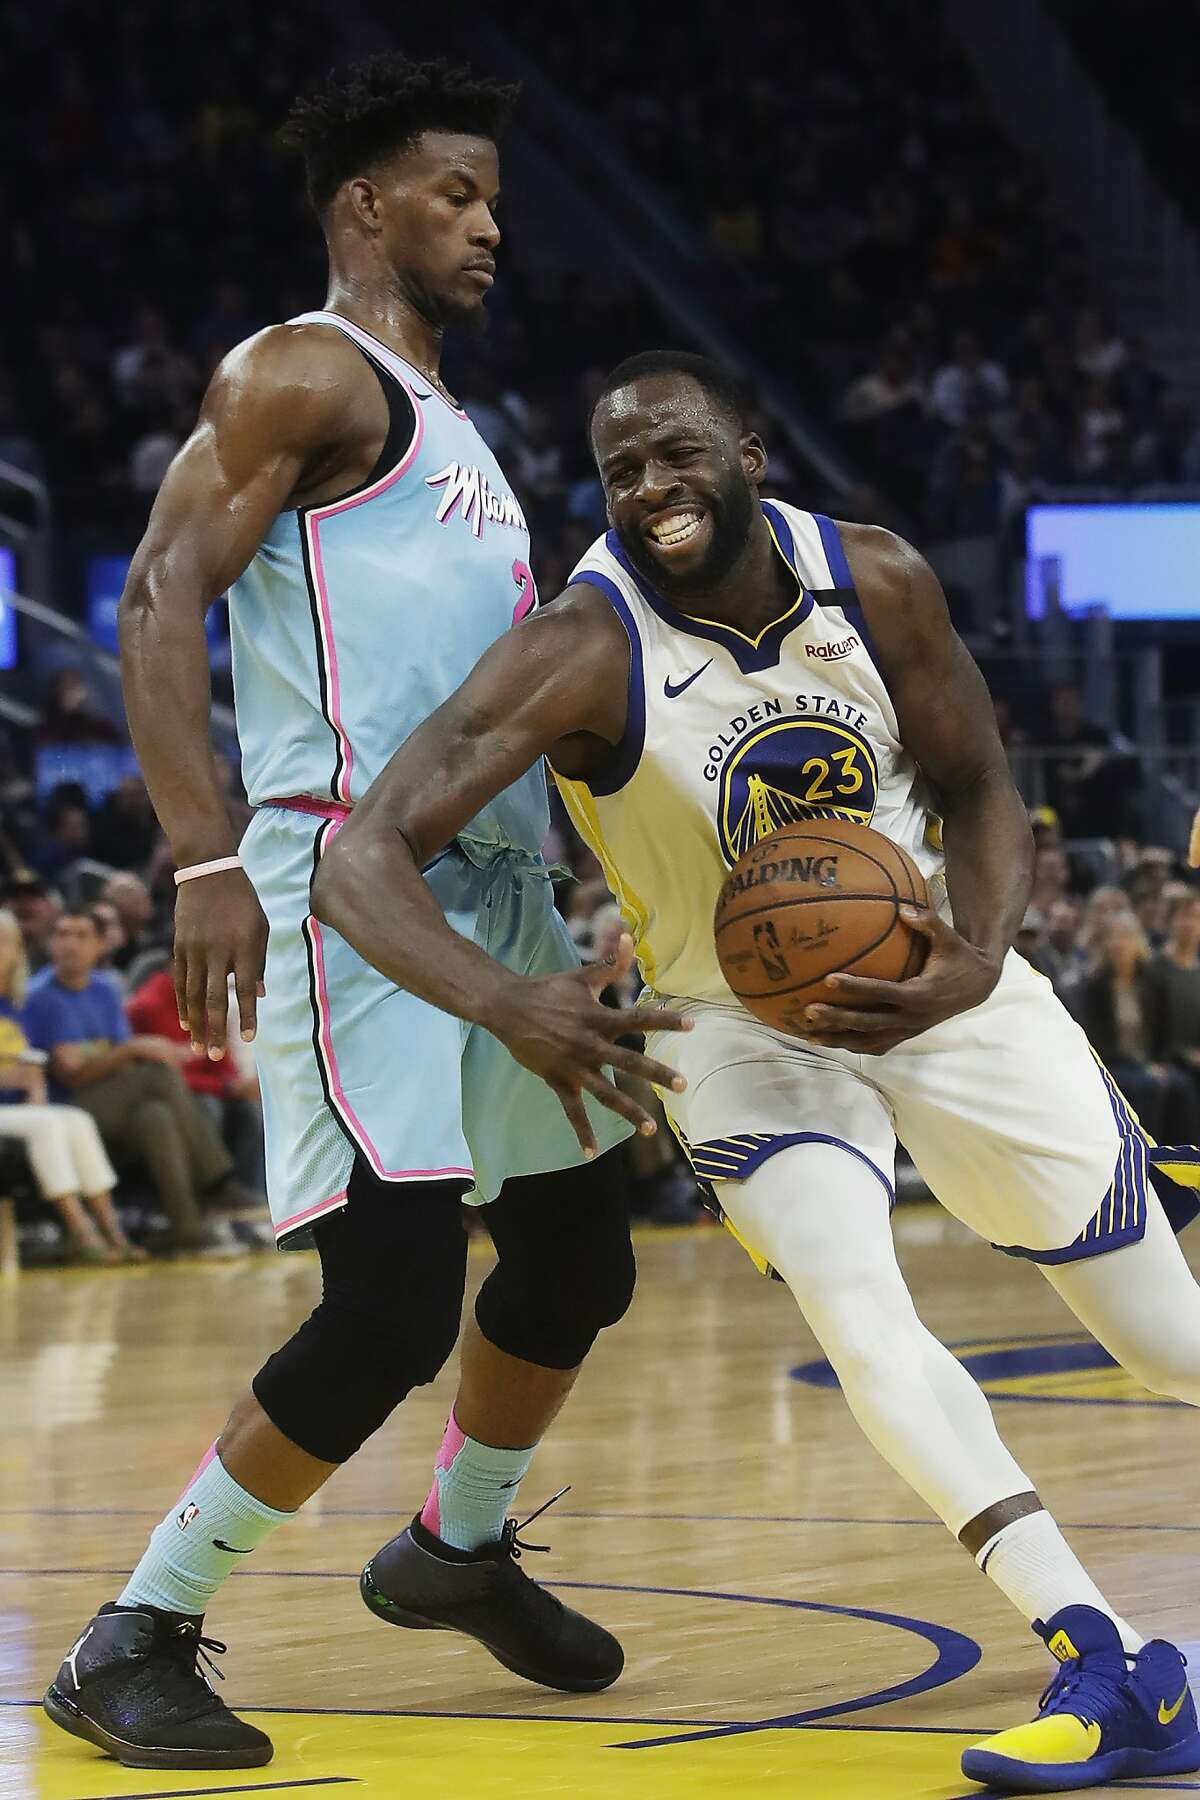 Golden State Warriors forward Draymond Green, right, drives against Miami Heat forward Jimmy Butler during the second half of an NBA basketball game in San Francisco, Monday, Feb. 10, 2020. (AP Photo/Jeff Chiu)